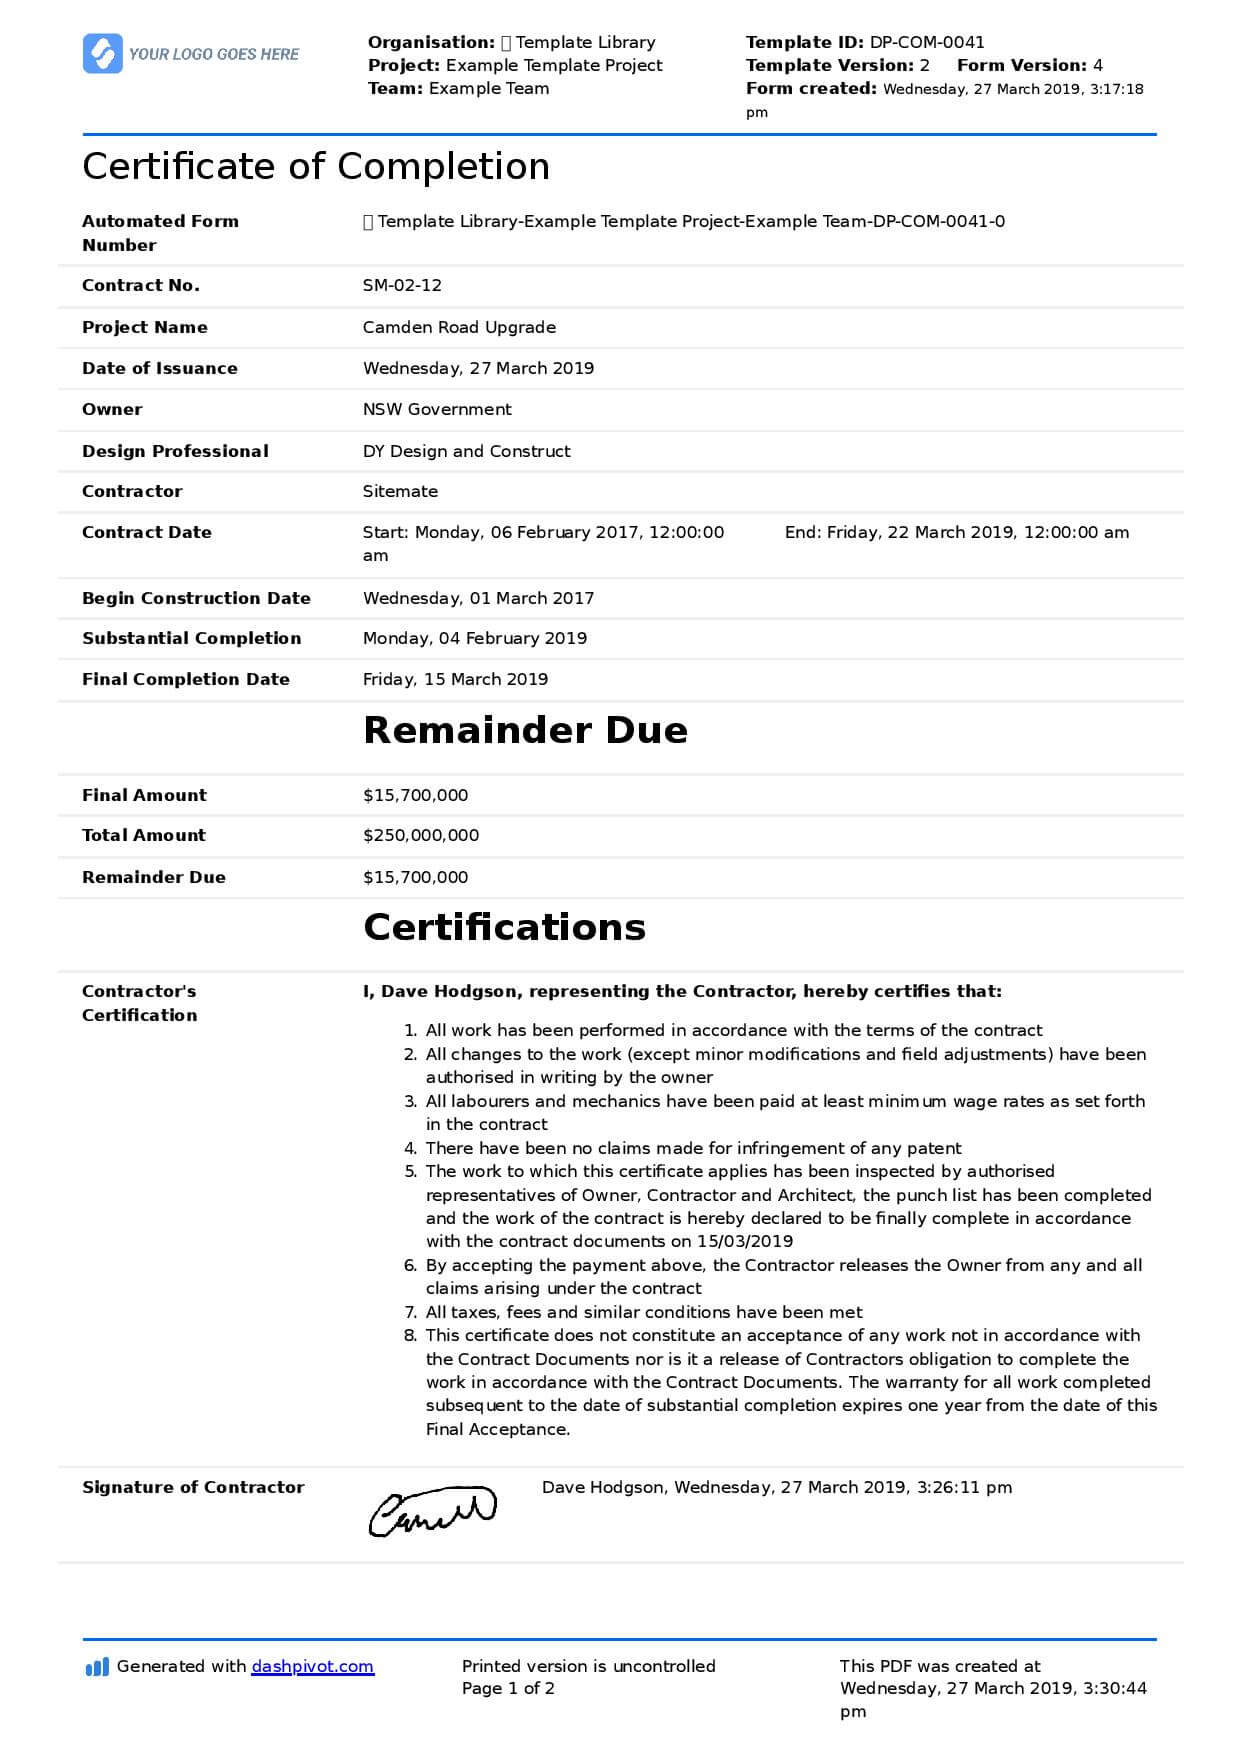 Certificate Of Completion For Construction (Free Template + With Certificate Of Completion Construction Templates